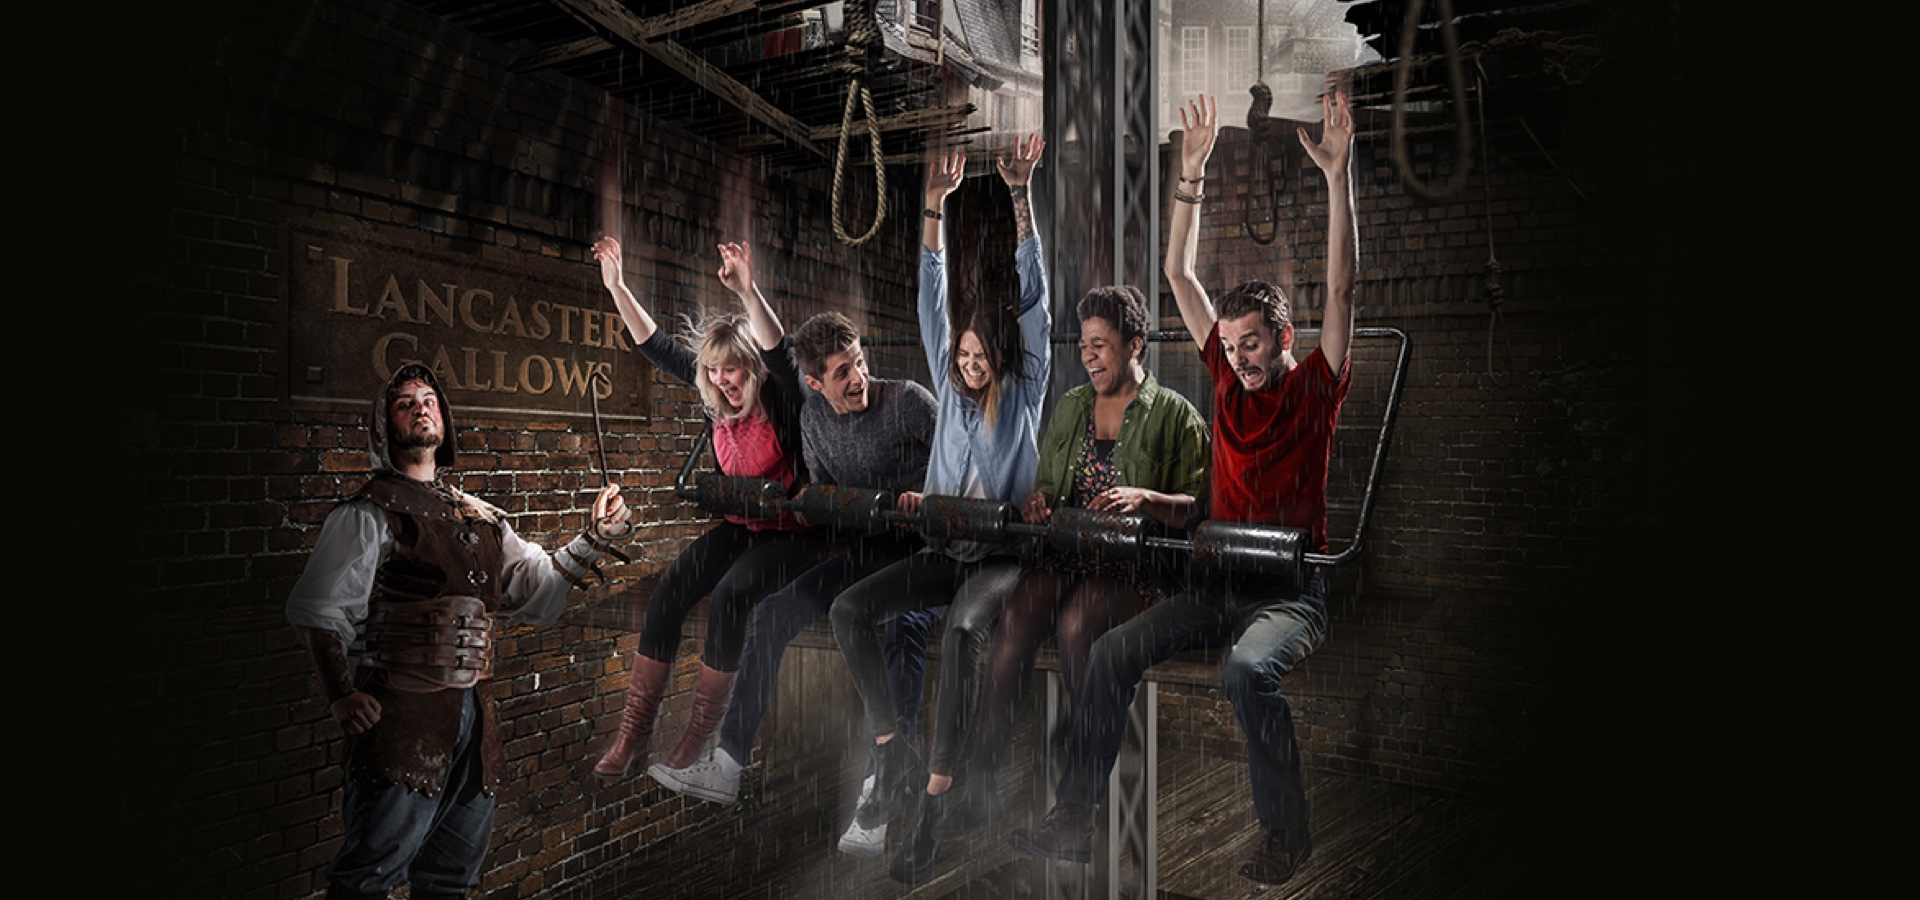 Guests on the drop dead ride at the Blackpool Tower Dungeon